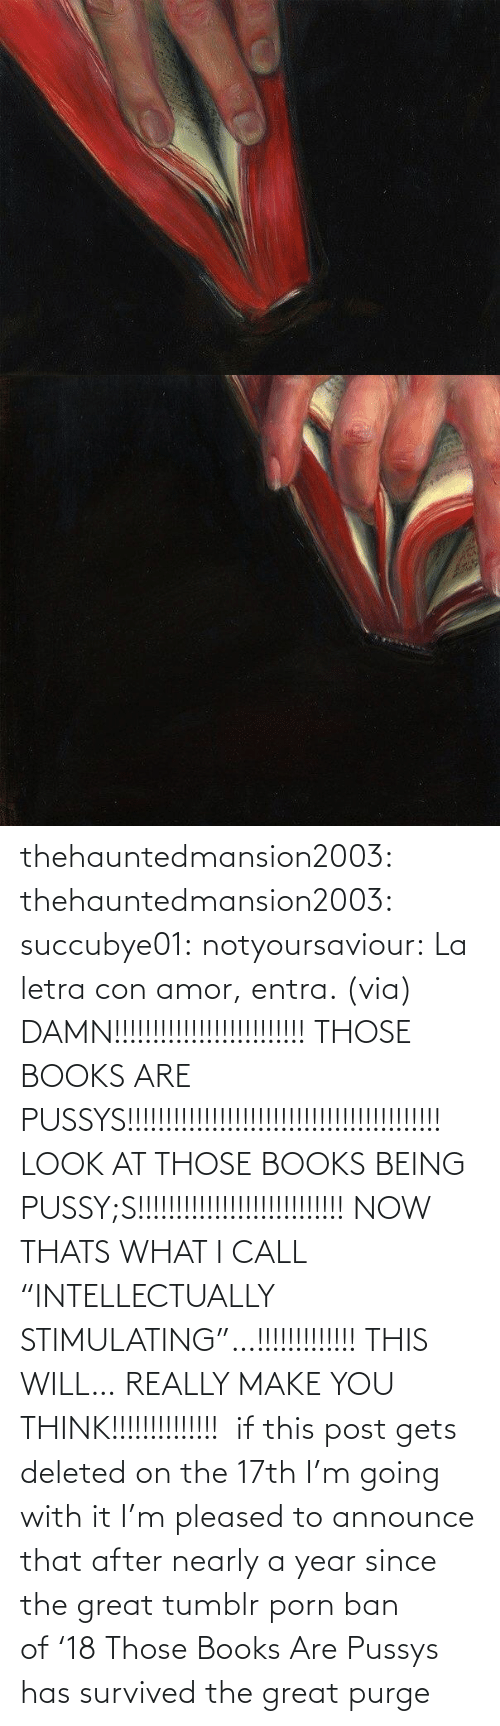 "con: thehauntedmansion2003: thehauntedmansion2003:  succubye01:  notyoursaviour:  La letra con amor, entra. (via)  DAMN!!!!!!!!!!!!!!!!!!!!!!!!! THOSE BOOKS ARE PUSSYS!!!!!!!!!!!!!!!!!!!!!!!!!!!!!!!!!!!!!!!!! LOOK AT THOSE BOOKS BEING PUSSY;S!!!!!!!!!!!!!!!!!!!!!!!!!!! NOW THATS WHAT I CALL ""INTELLECTUALLY STIMULATING""…!!!!!!!!!!!!! THIS WILL… REALLY MAKE YOU THINK!!!!!!!!!!!!!!   if this post gets deleted on the 17th I'm going with it  I'm pleased to announce that after nearly a year since the great tumblr porn ban of '18 Those Books Are Pussys has survived the great purge"